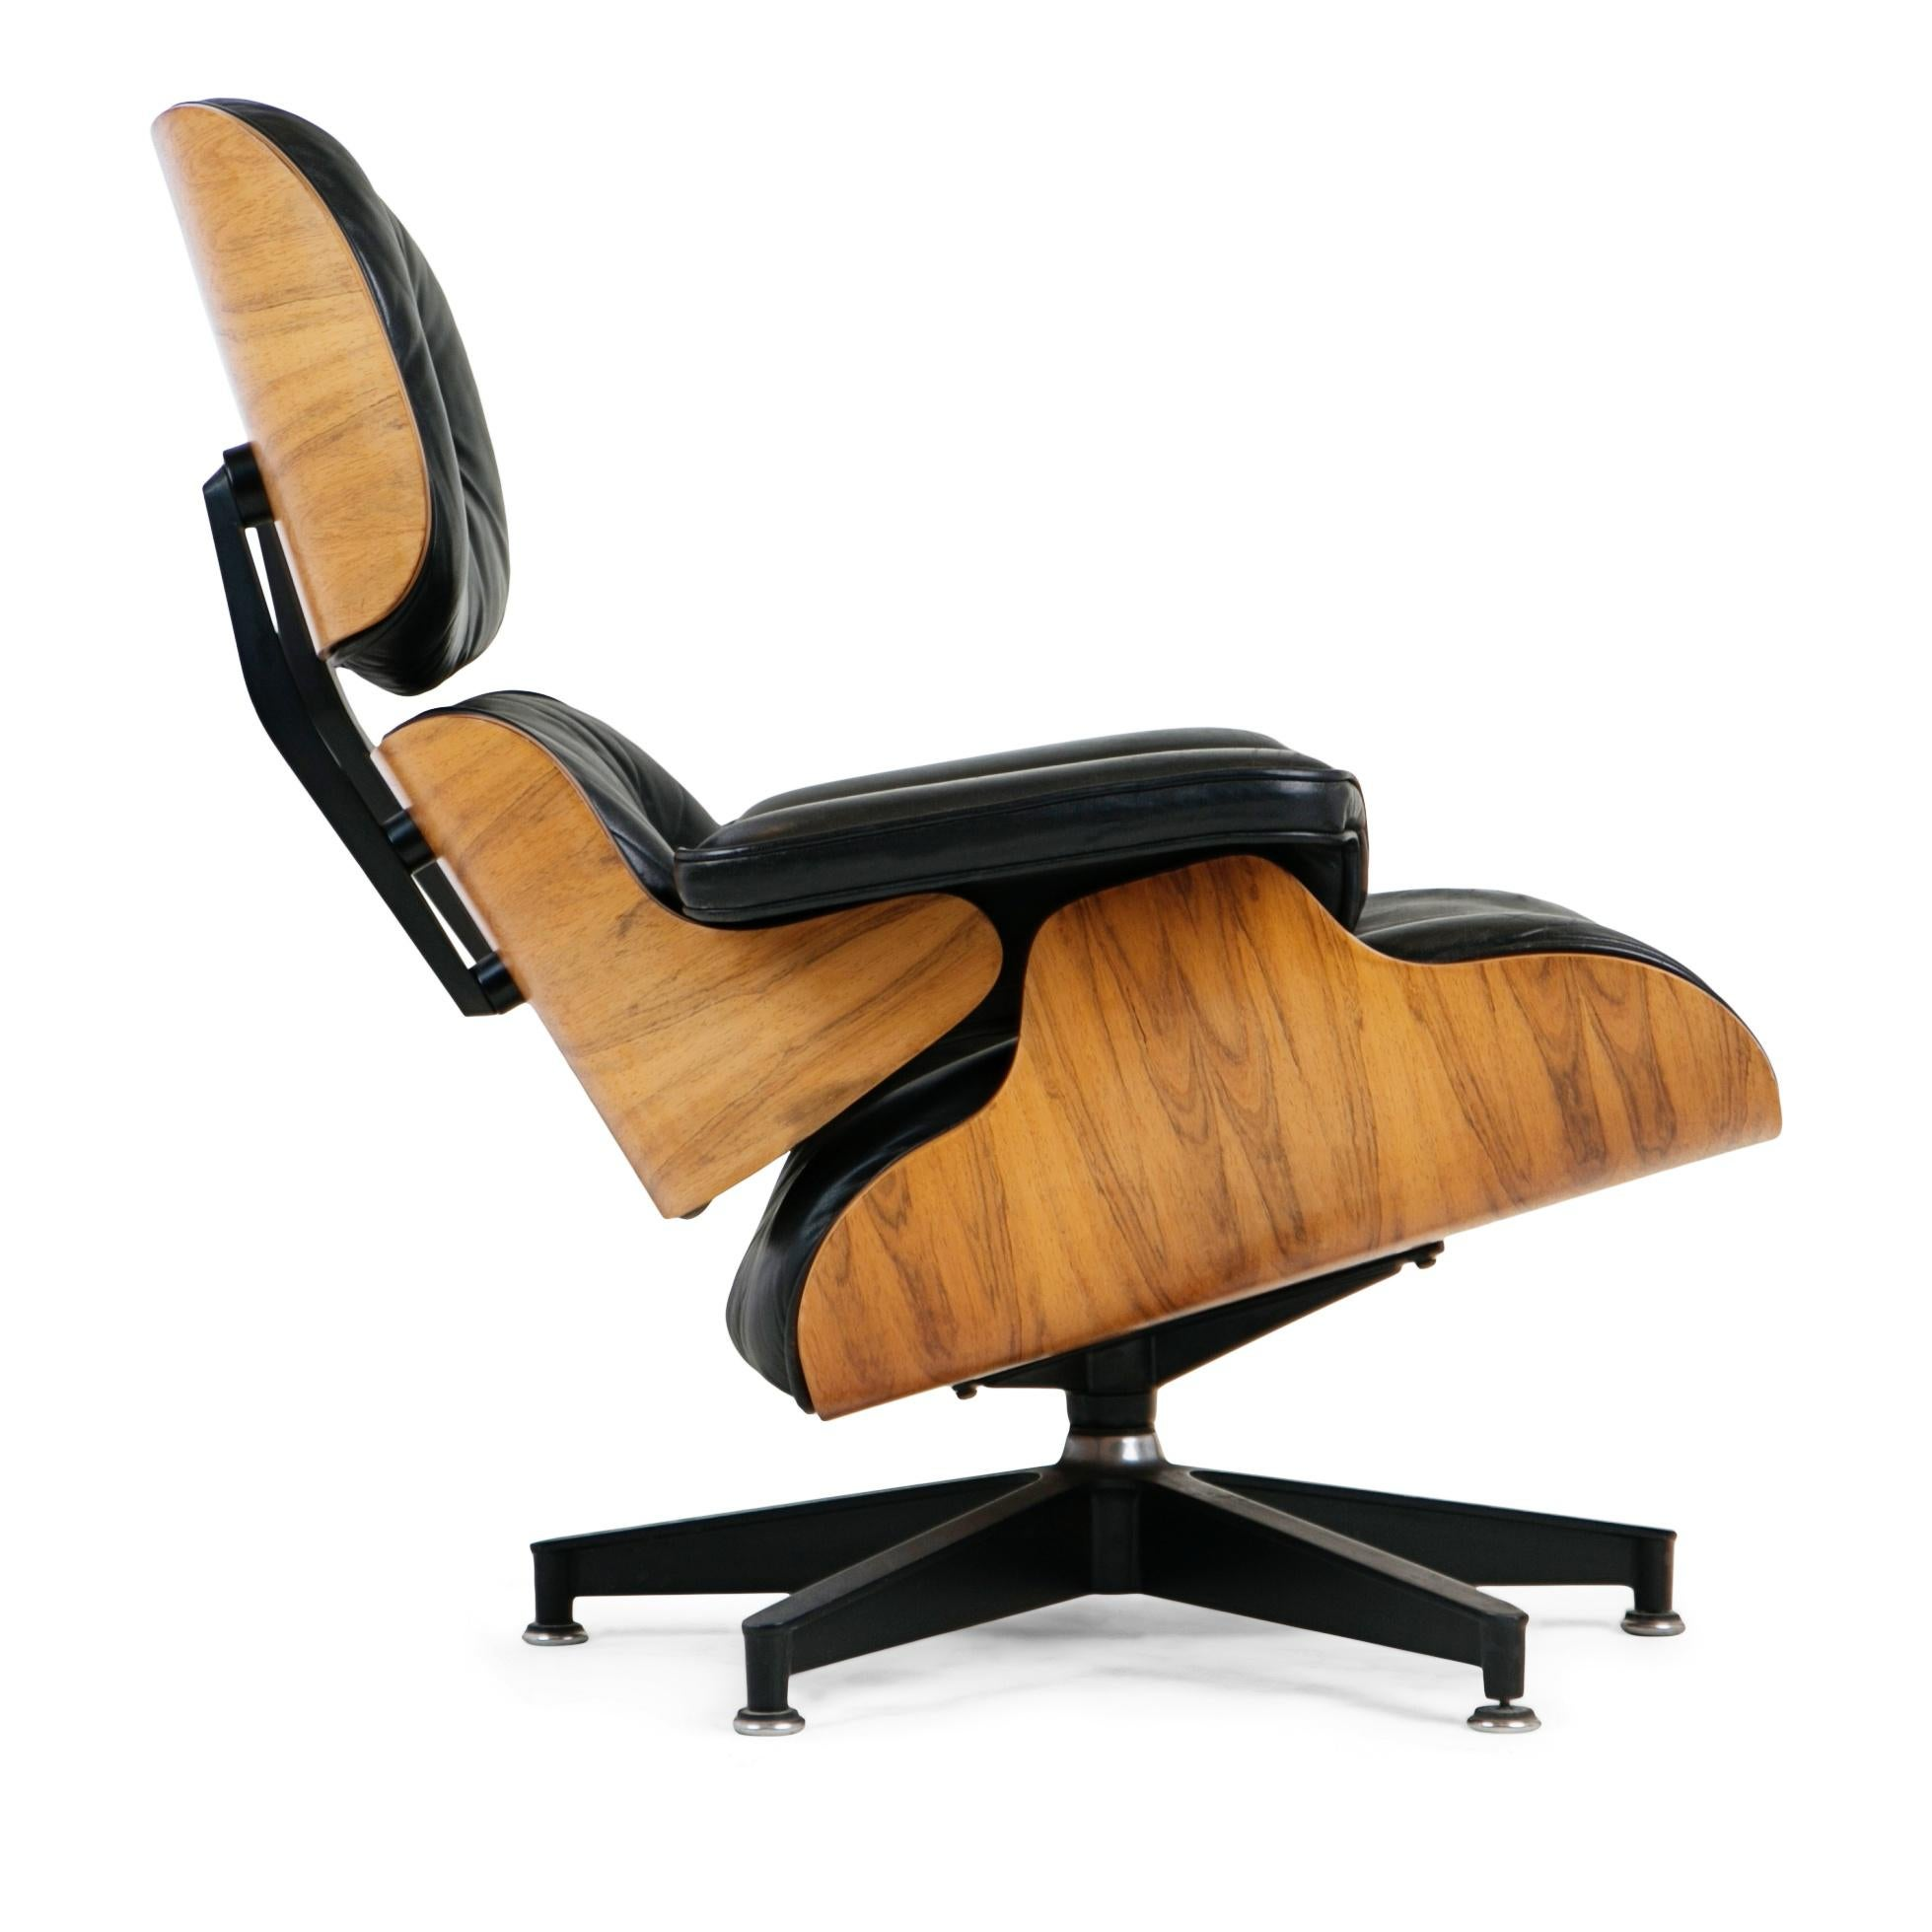 Herman Miller Charles U0026 Ray Eames Lounge Chair And Ottoman For Herman Miller,  Circa 1980